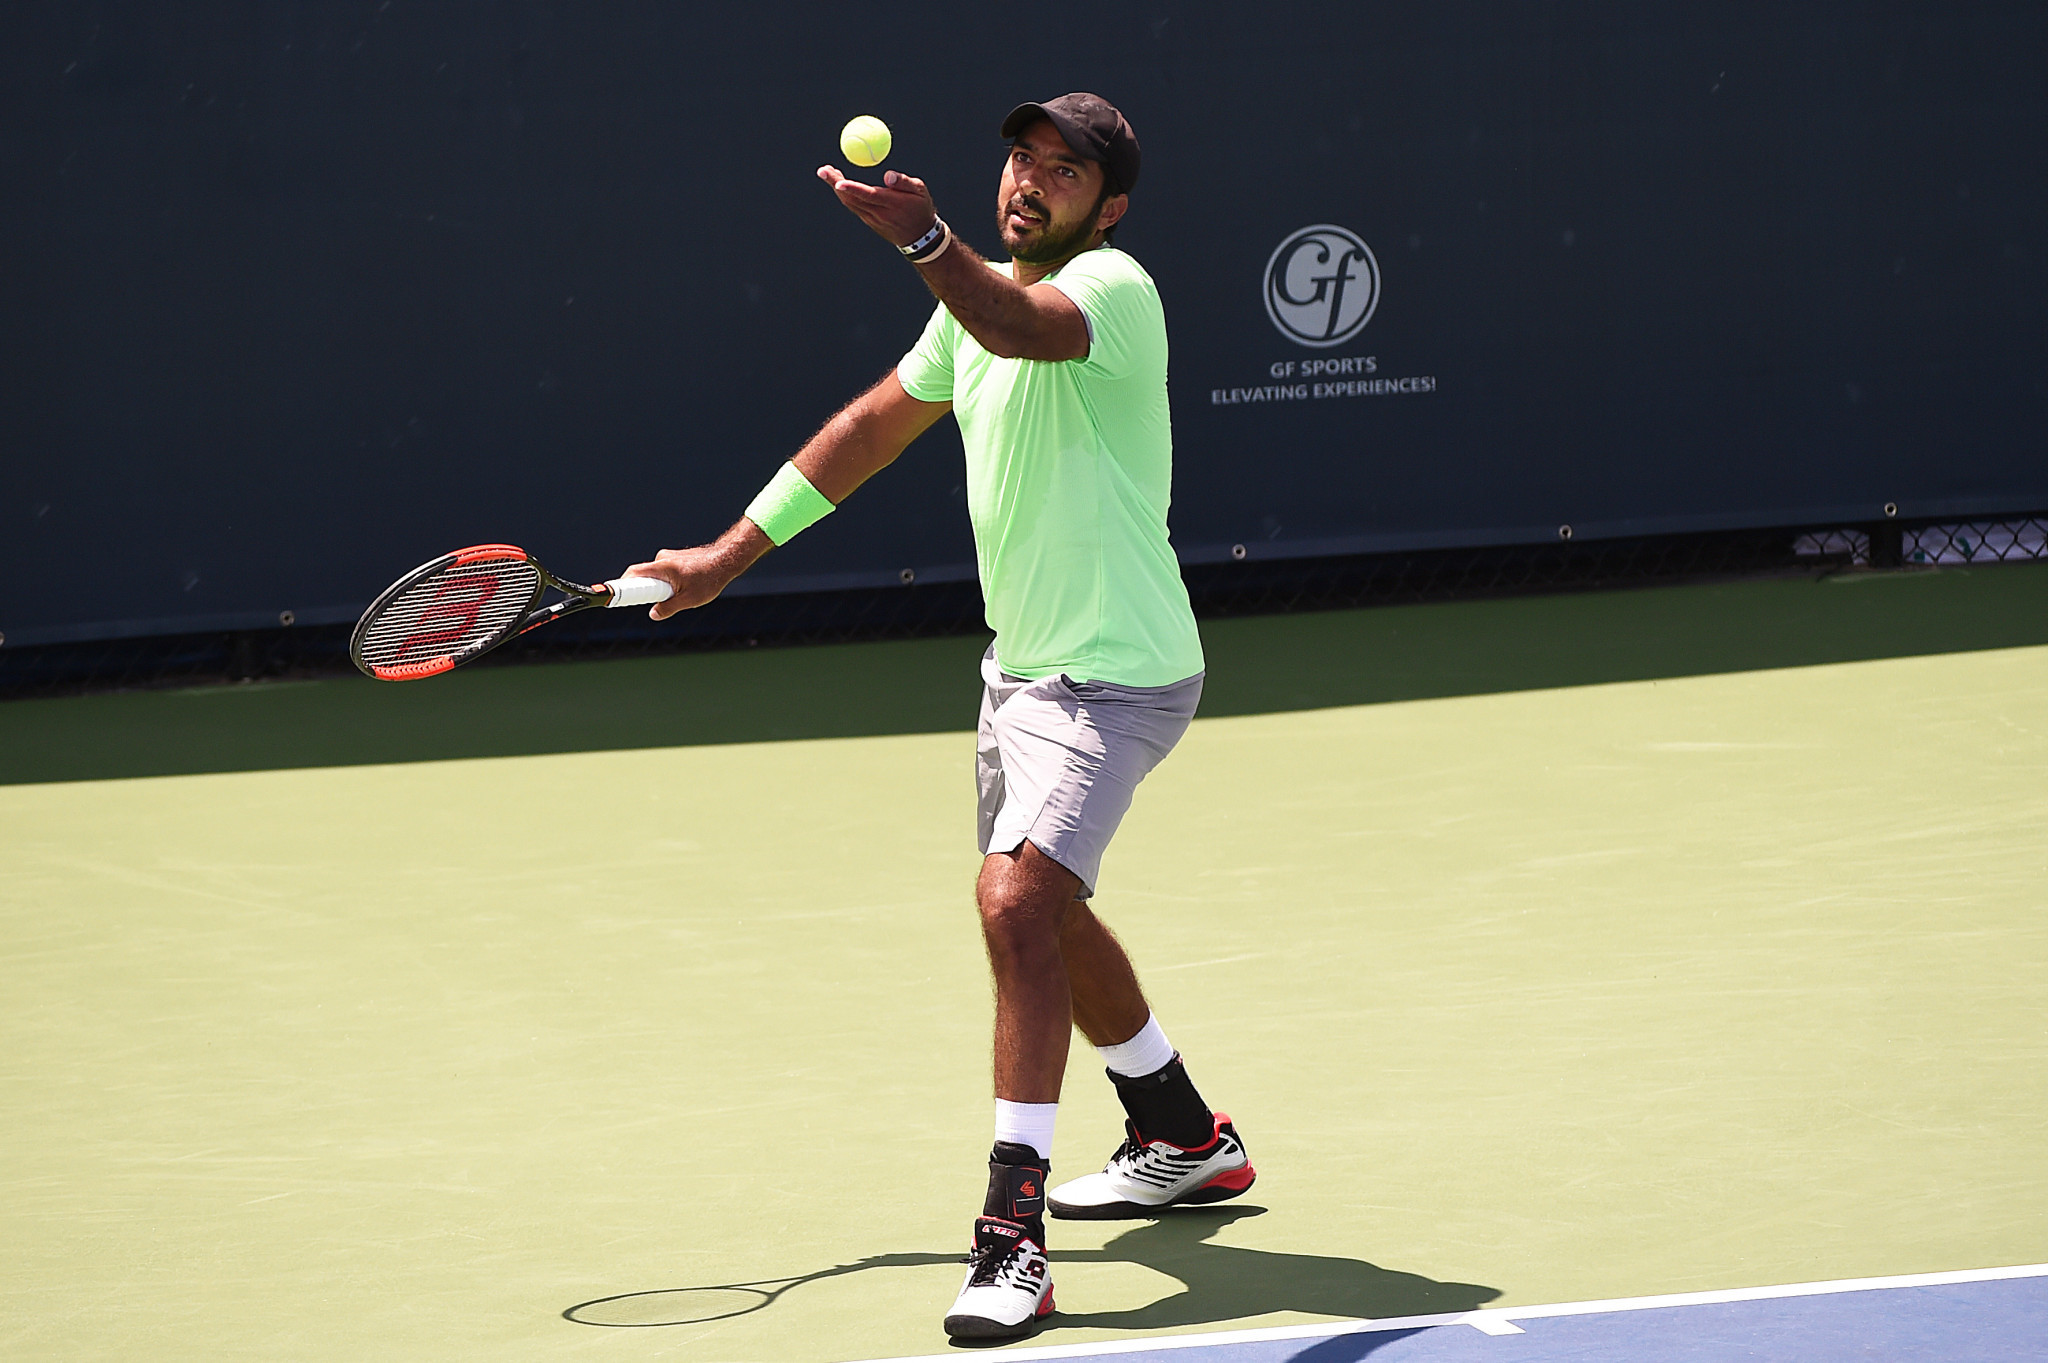 Aisam-ul-Haq Qureshi has raised money for those impacted by COVID-19 ©Getty Images